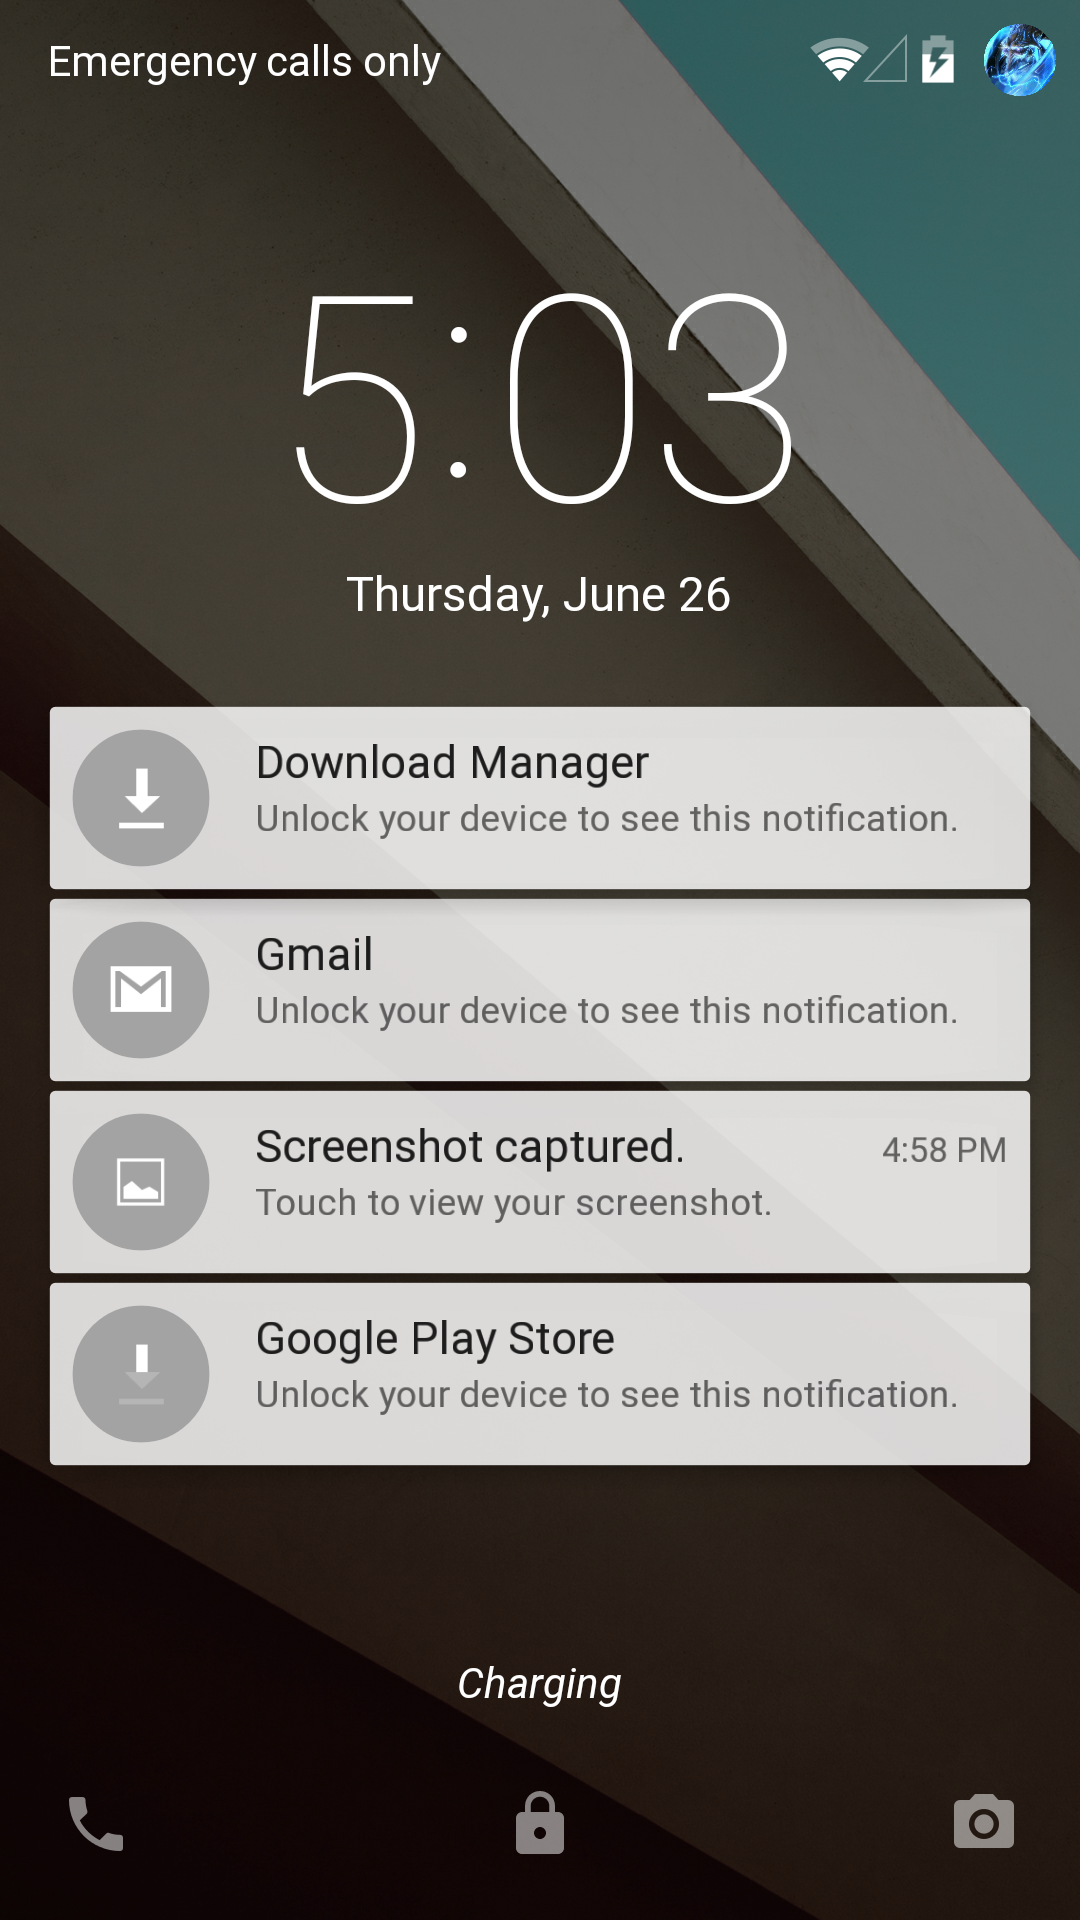 android 5.0 lock screen notifications